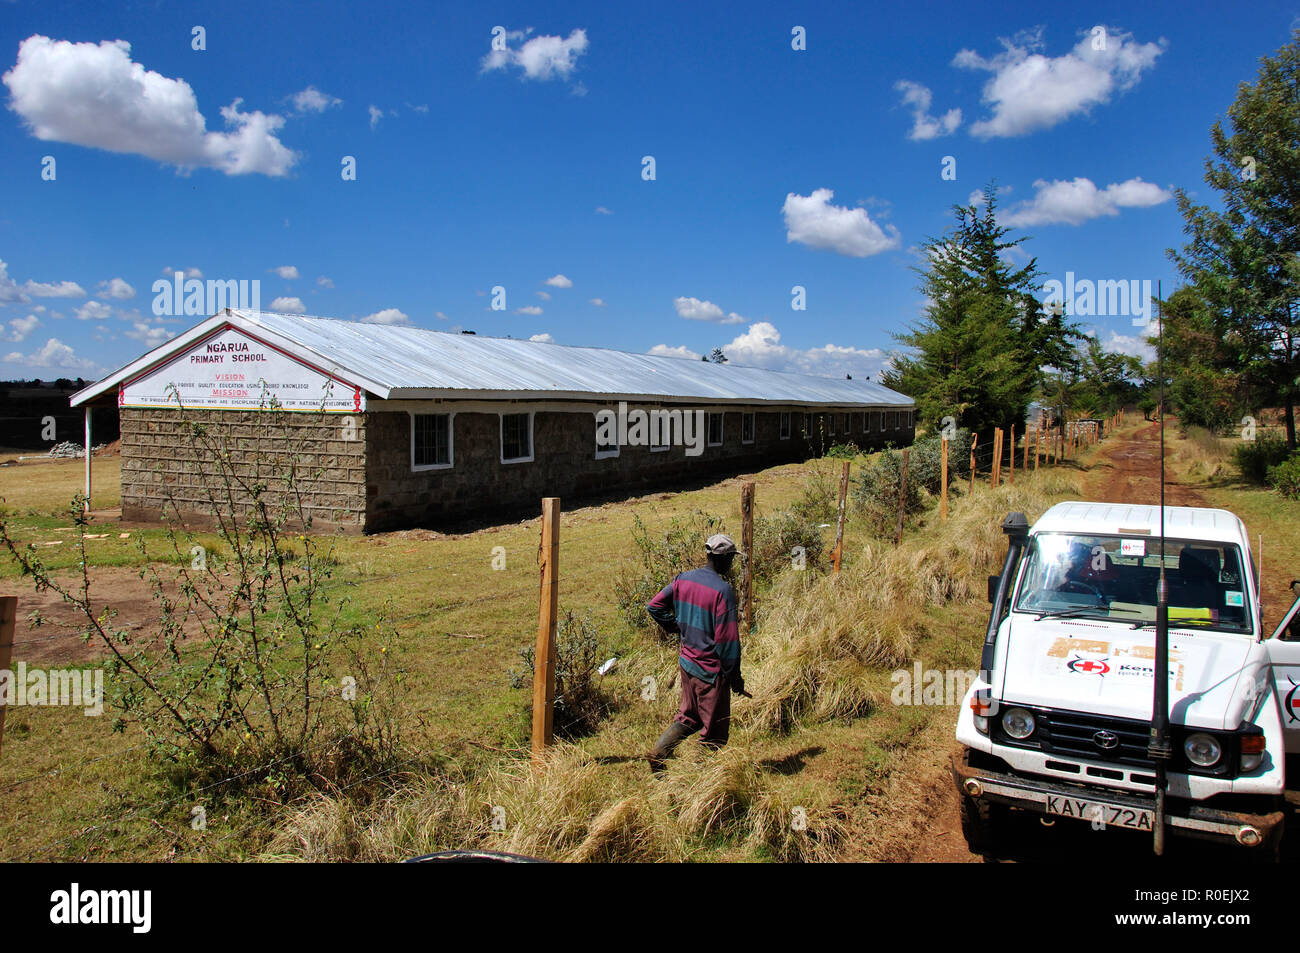 Eldoret Stock Photos & Eldoret Stock Images - Alamy